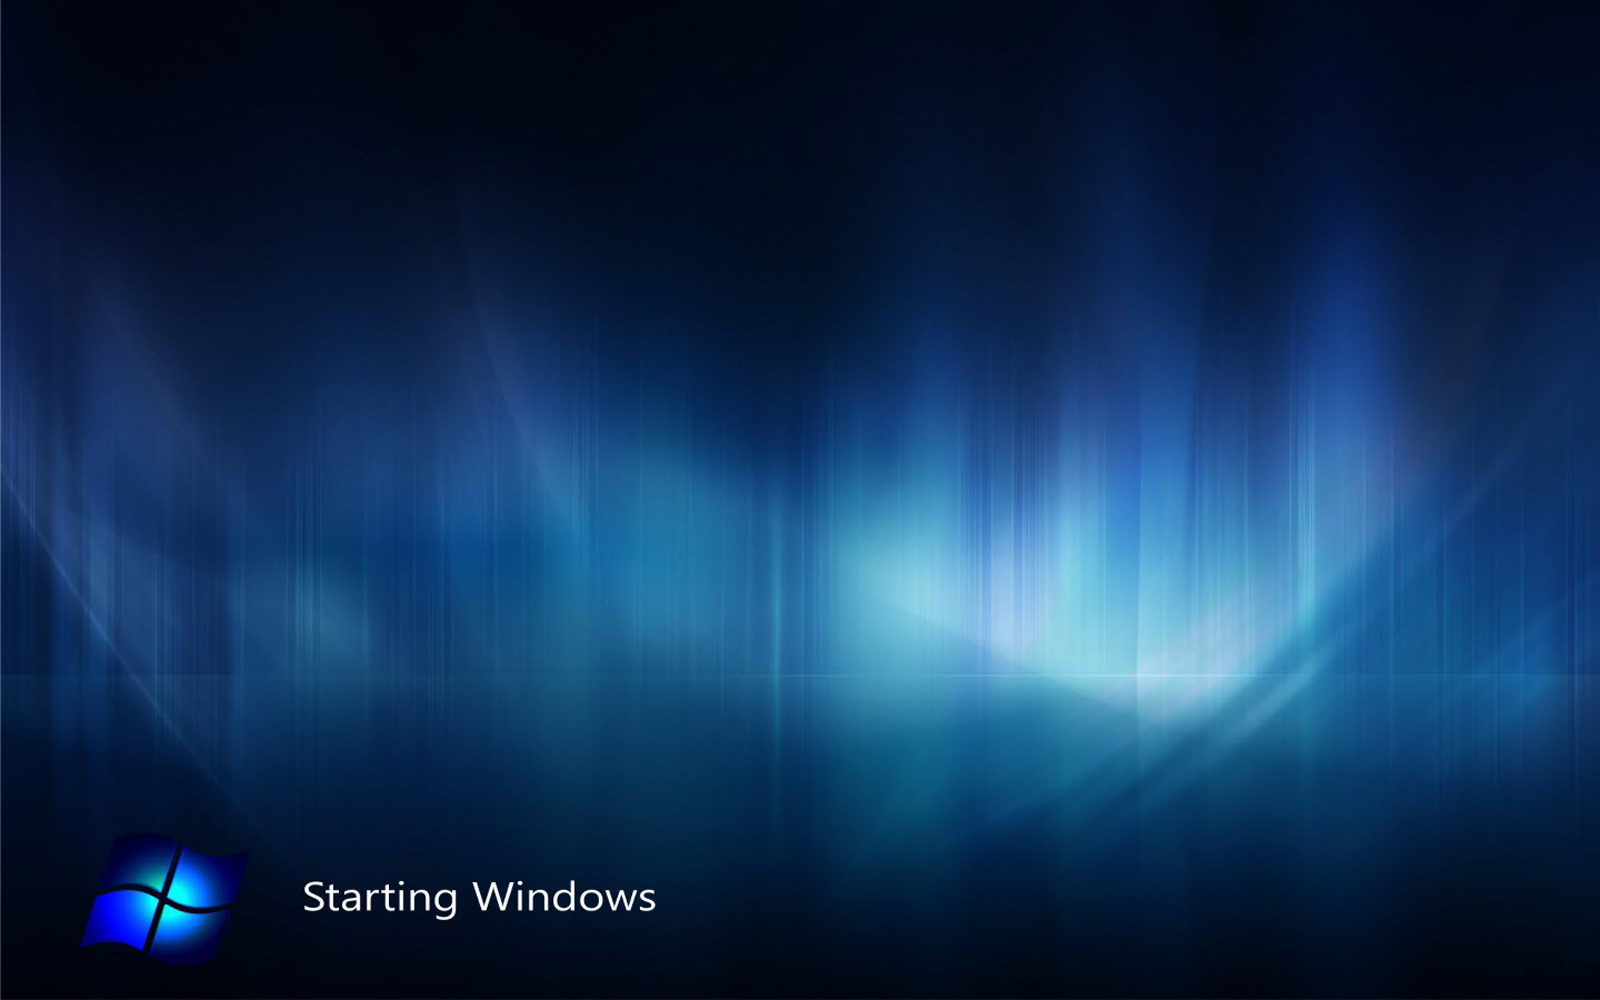 Windows 8 background themes hd wallpapers for Window background